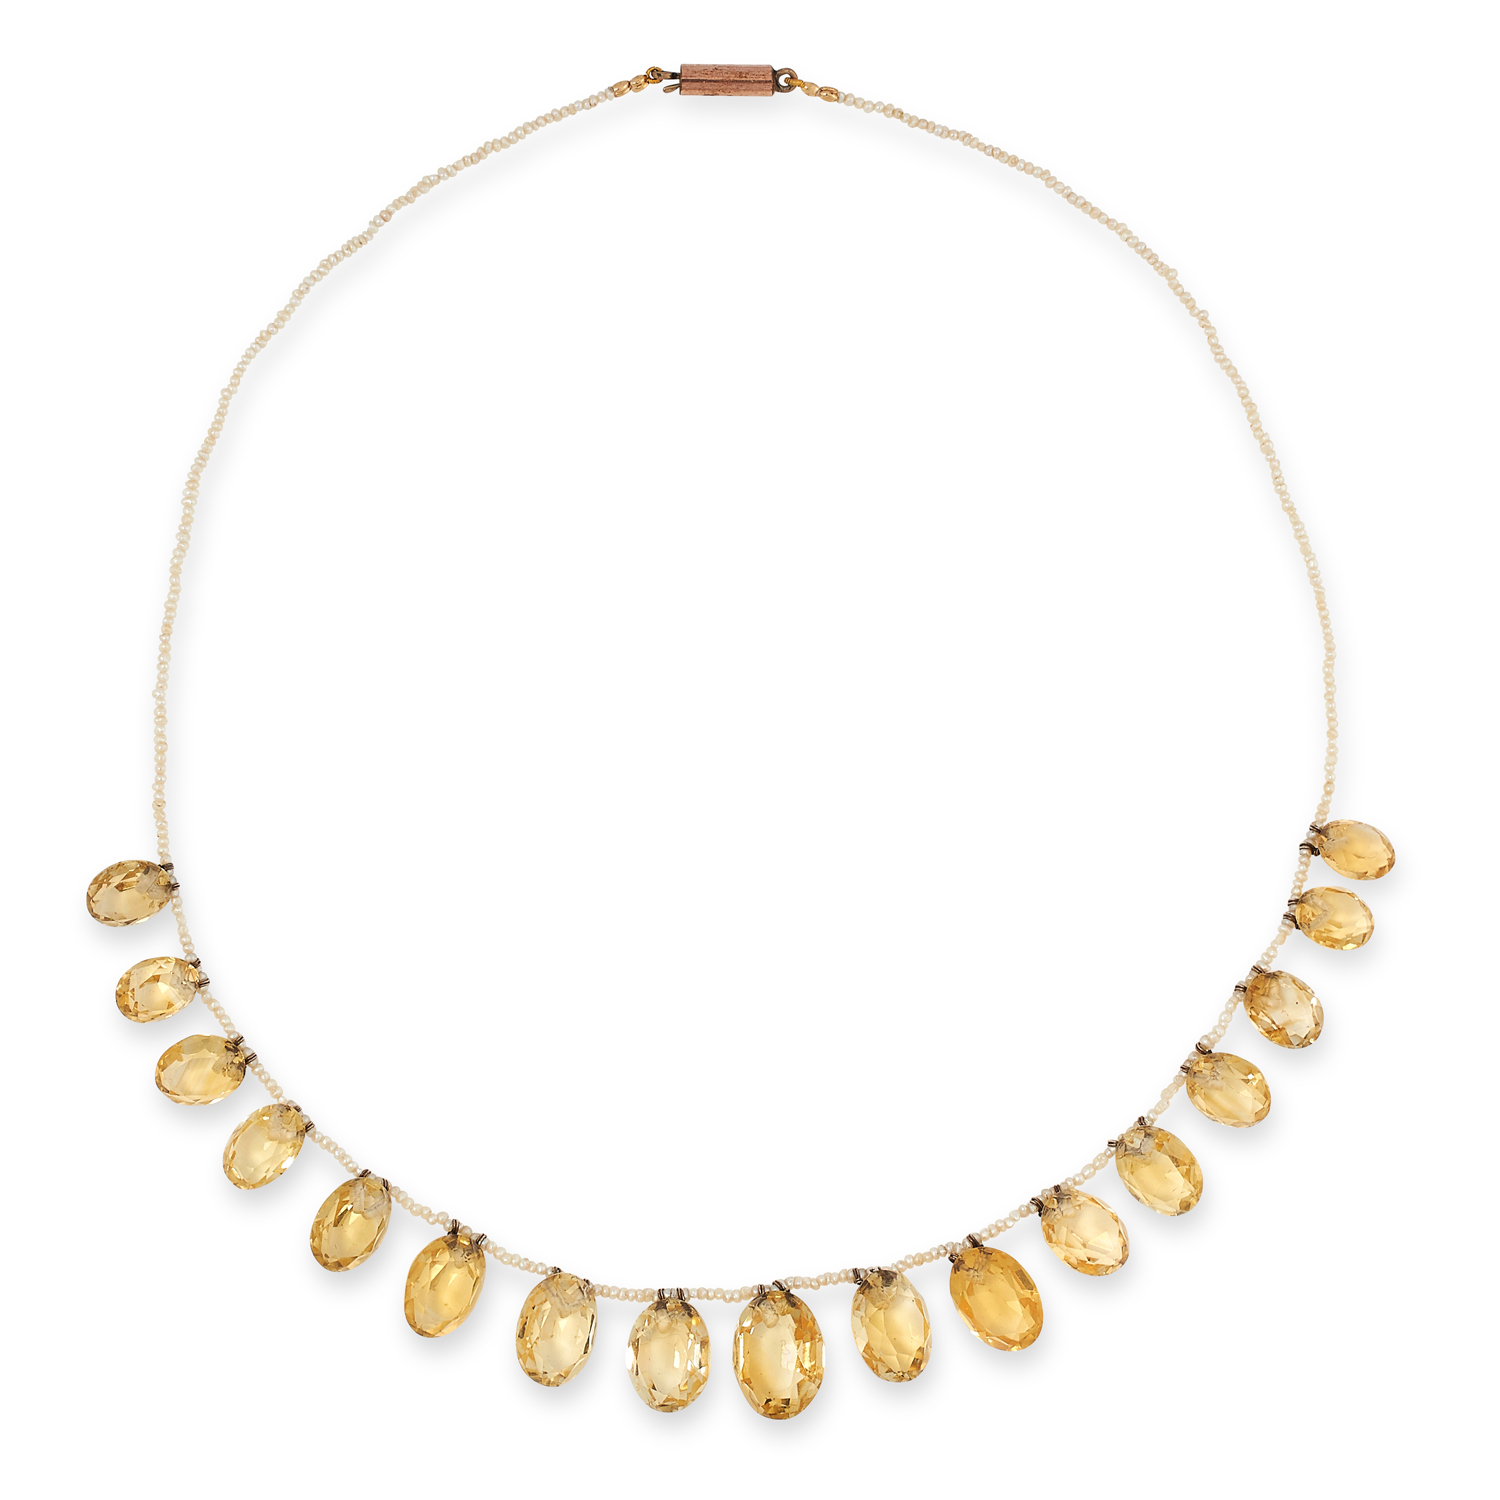 AN ANTIQUE CITRINE AND PEARL NECKLACE, 19TH CENTURY comprising of a single row of seed pearls